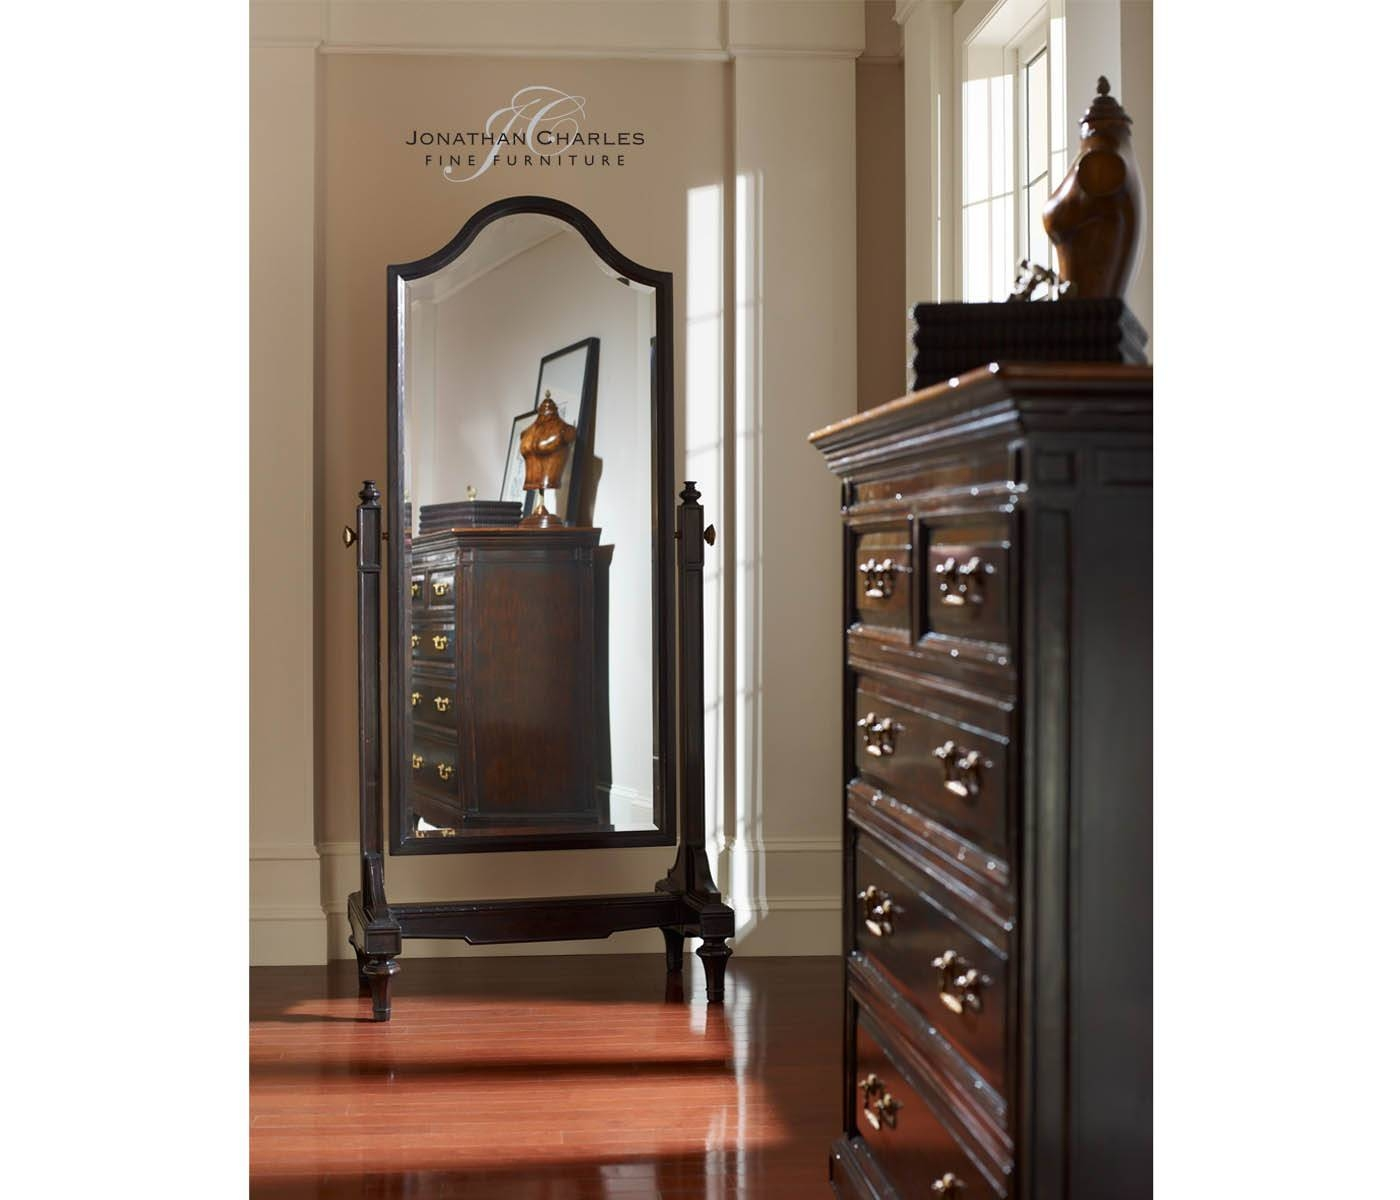 Ebonised Cheval Mirror (Full Length) with regard to Full Length Cheval Mirrors (Image 16 of 25)